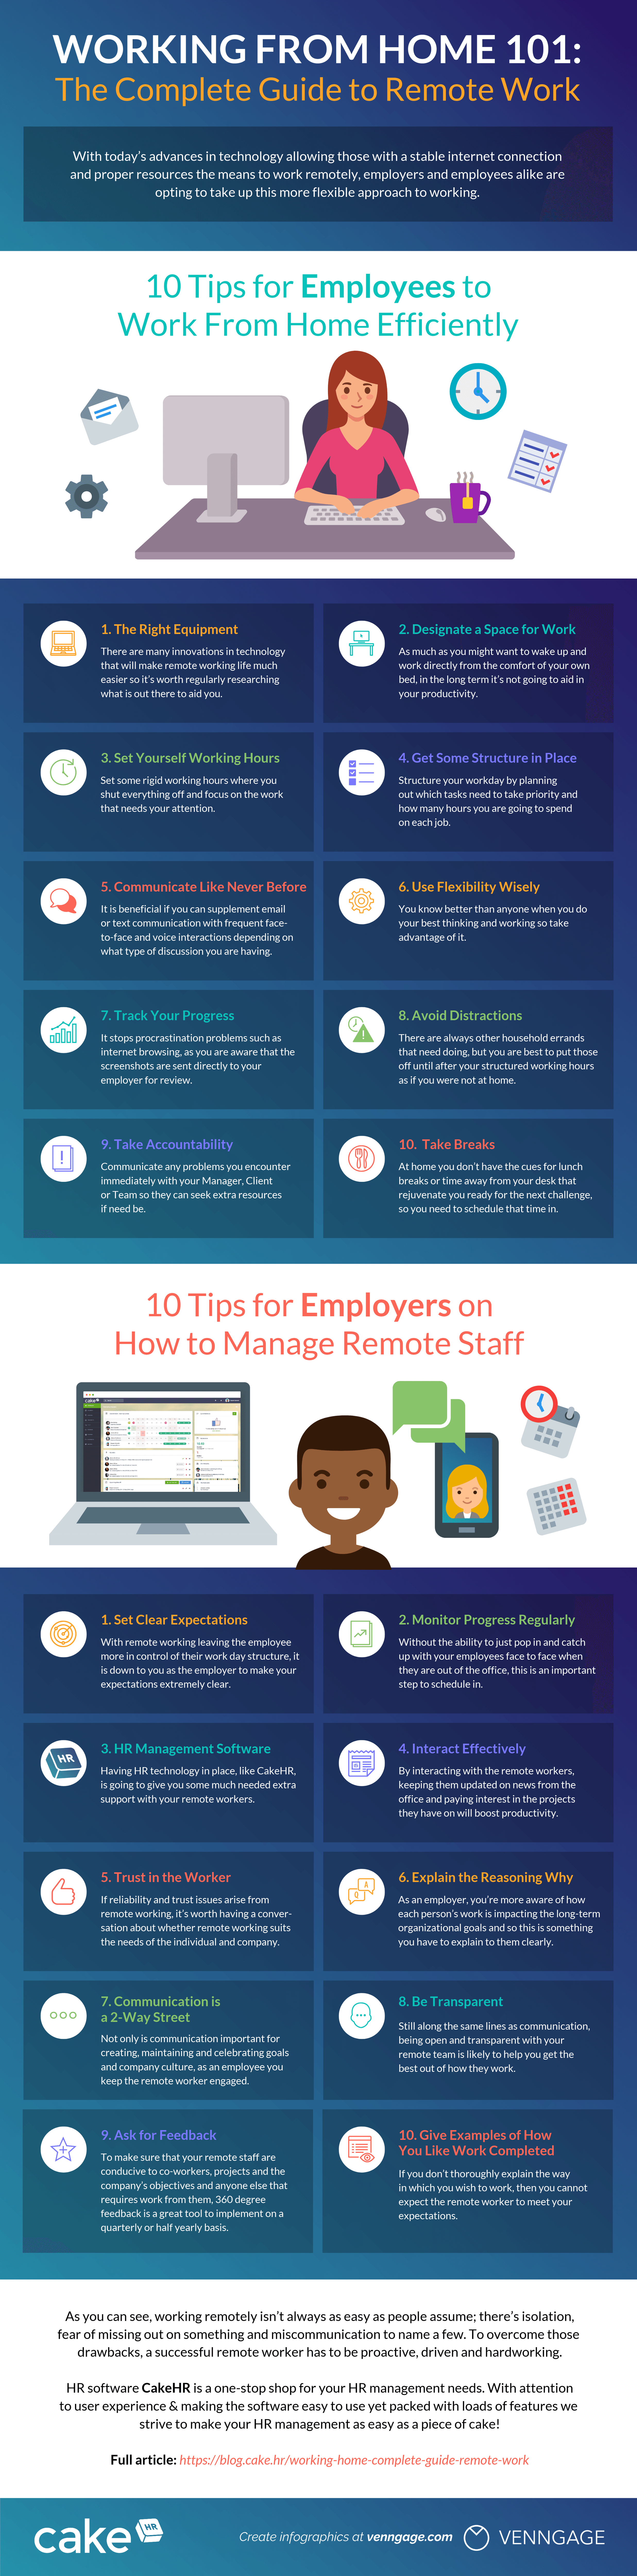 Working from Home 101: The Complete Guide to Remote Work [+Infographic] cakehr